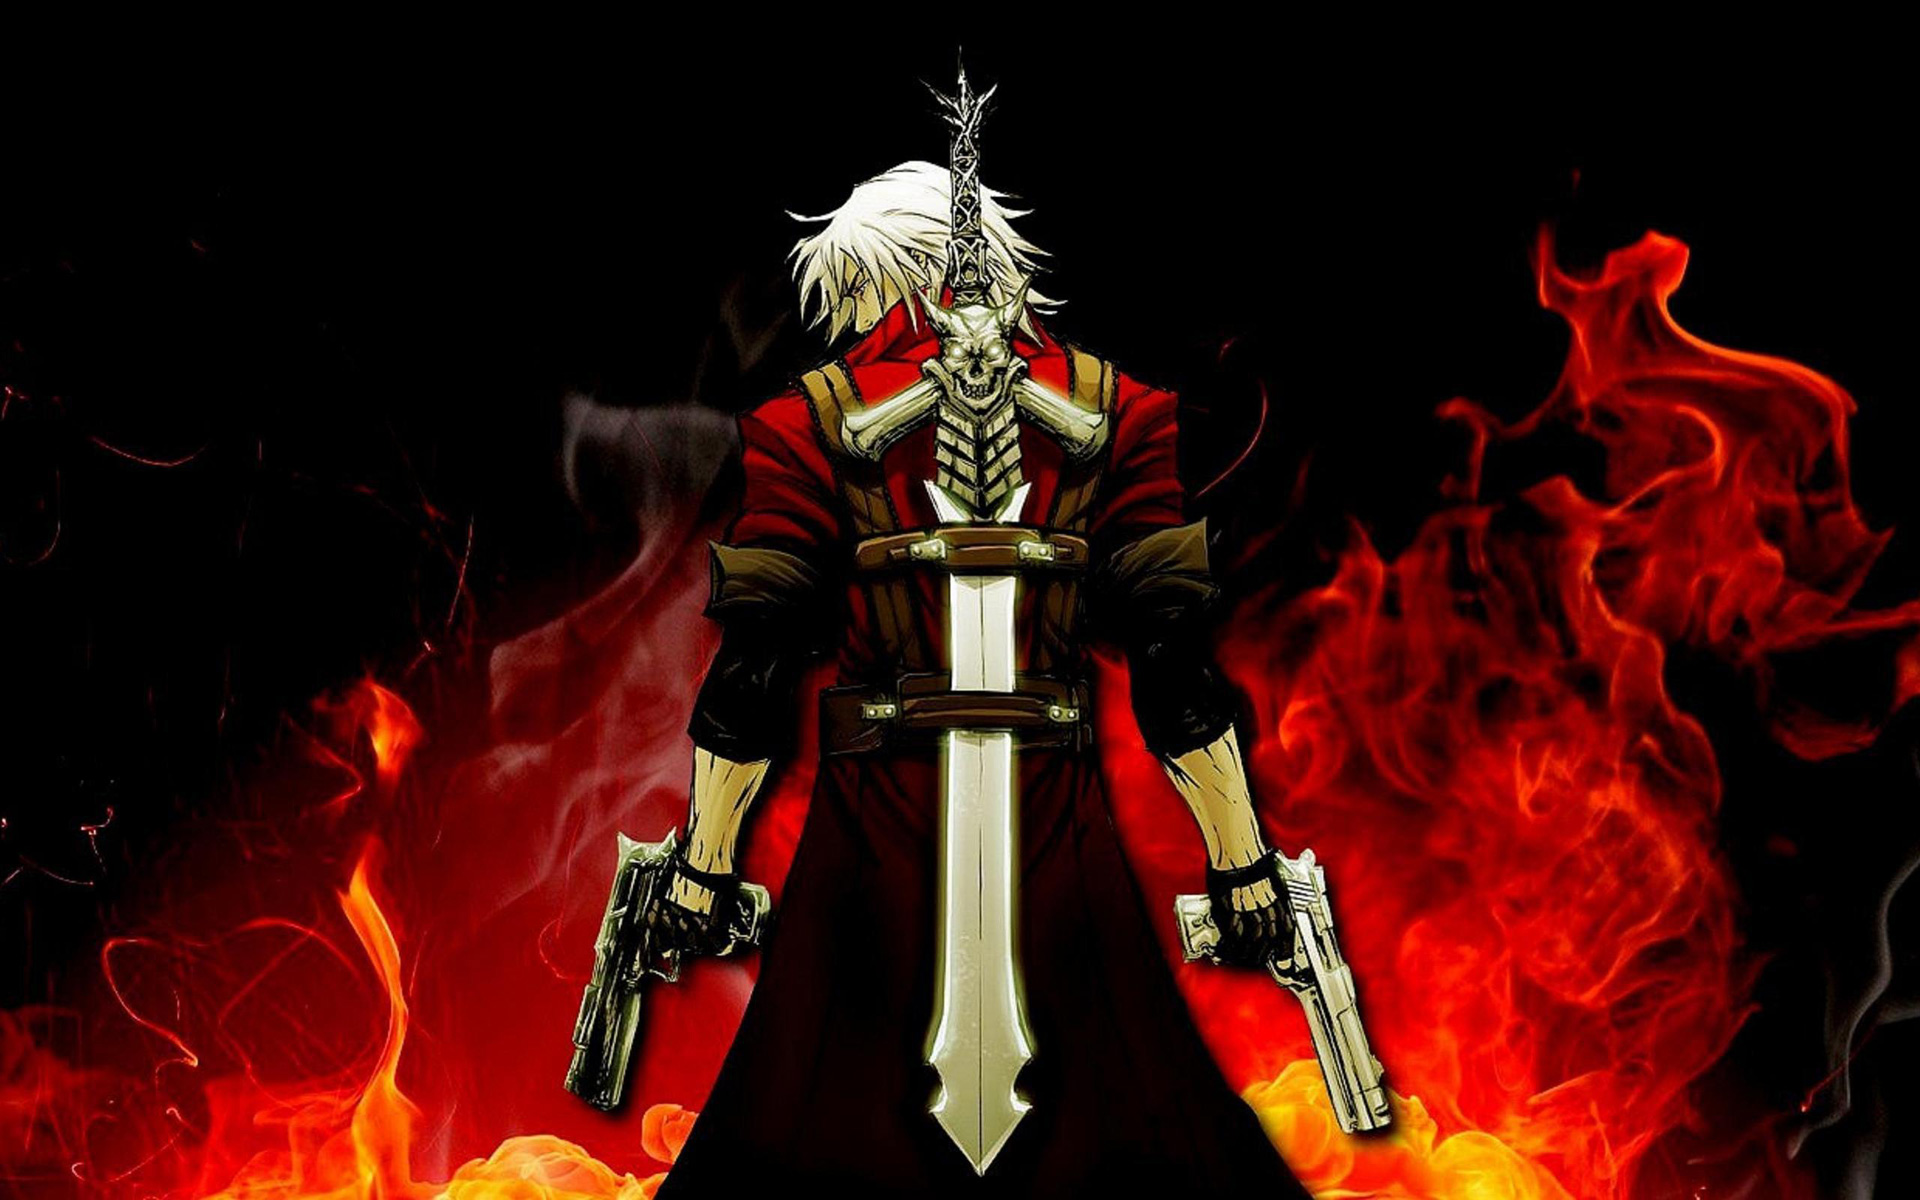 Devil May Cry 4 Wallpaper in 1920x1200